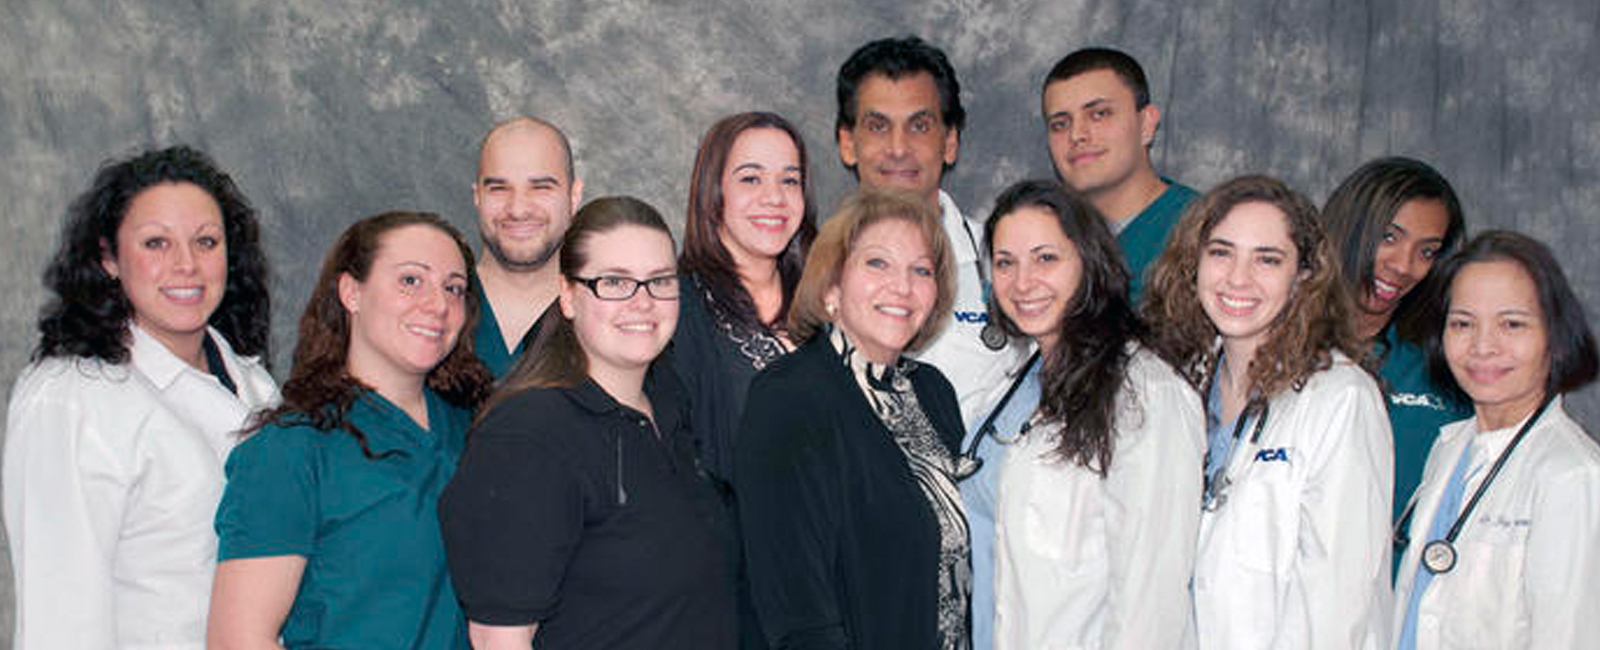 Homepage Team Picture of VCA SouthShore Animal Hospital